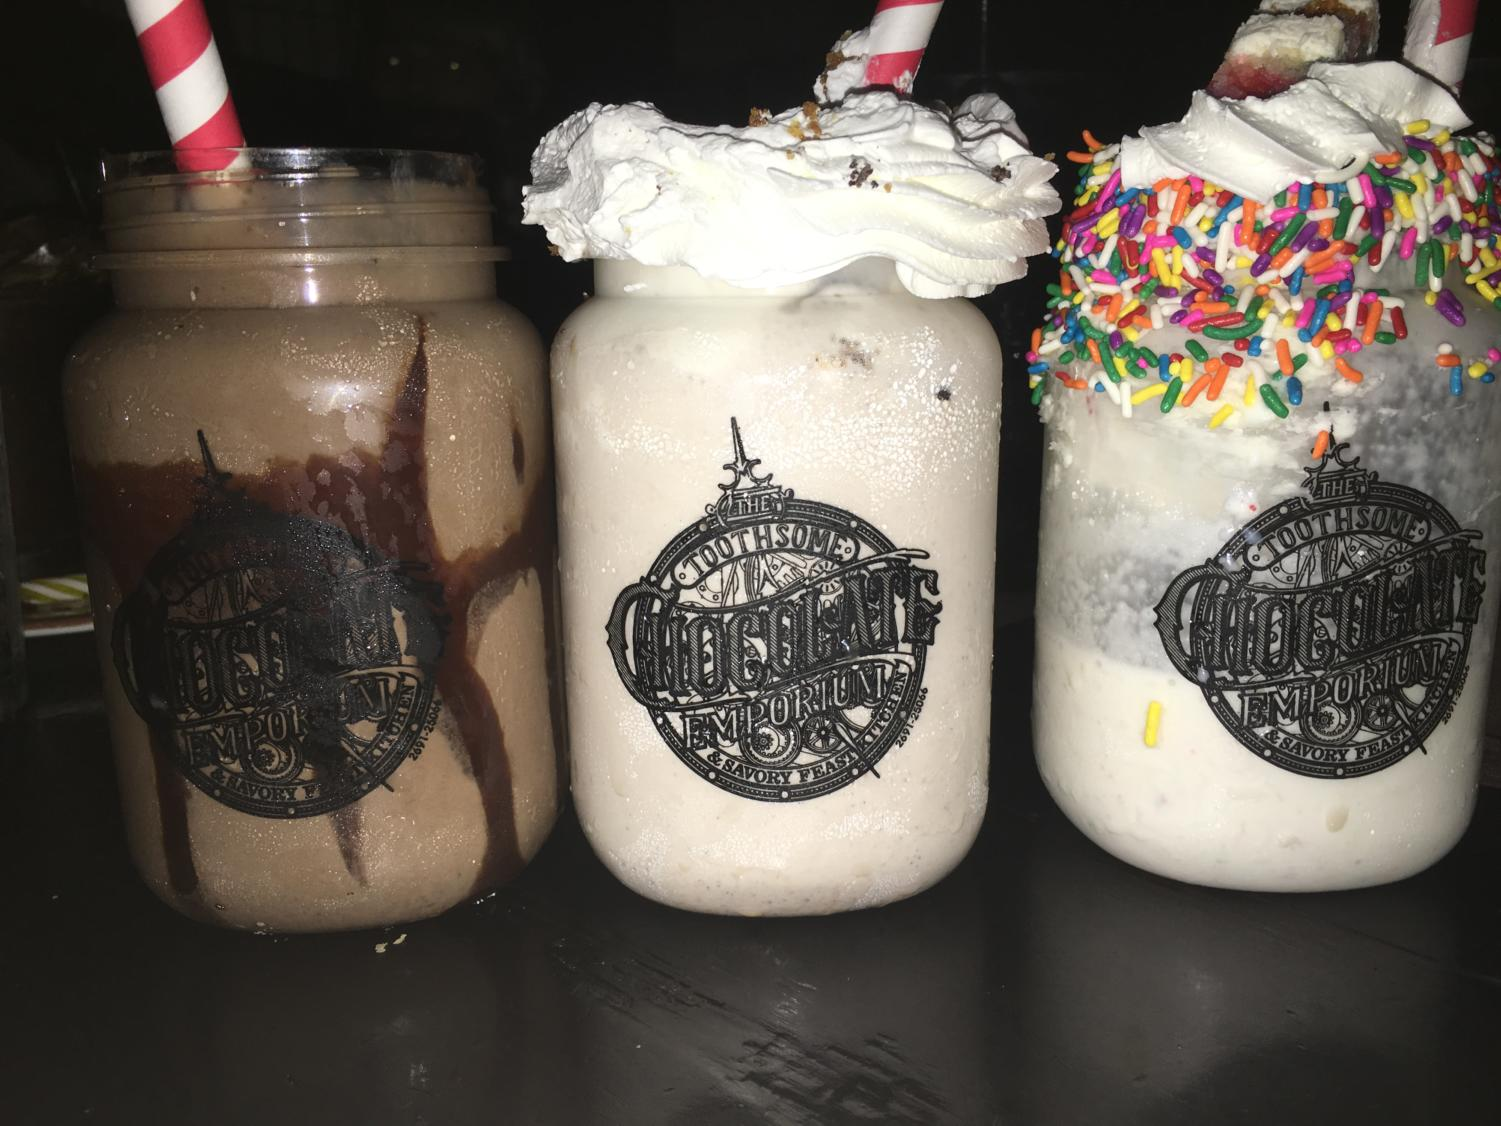 The brownie, confetti, and cookie shakes are among the most famous desserts served at the Emporium.